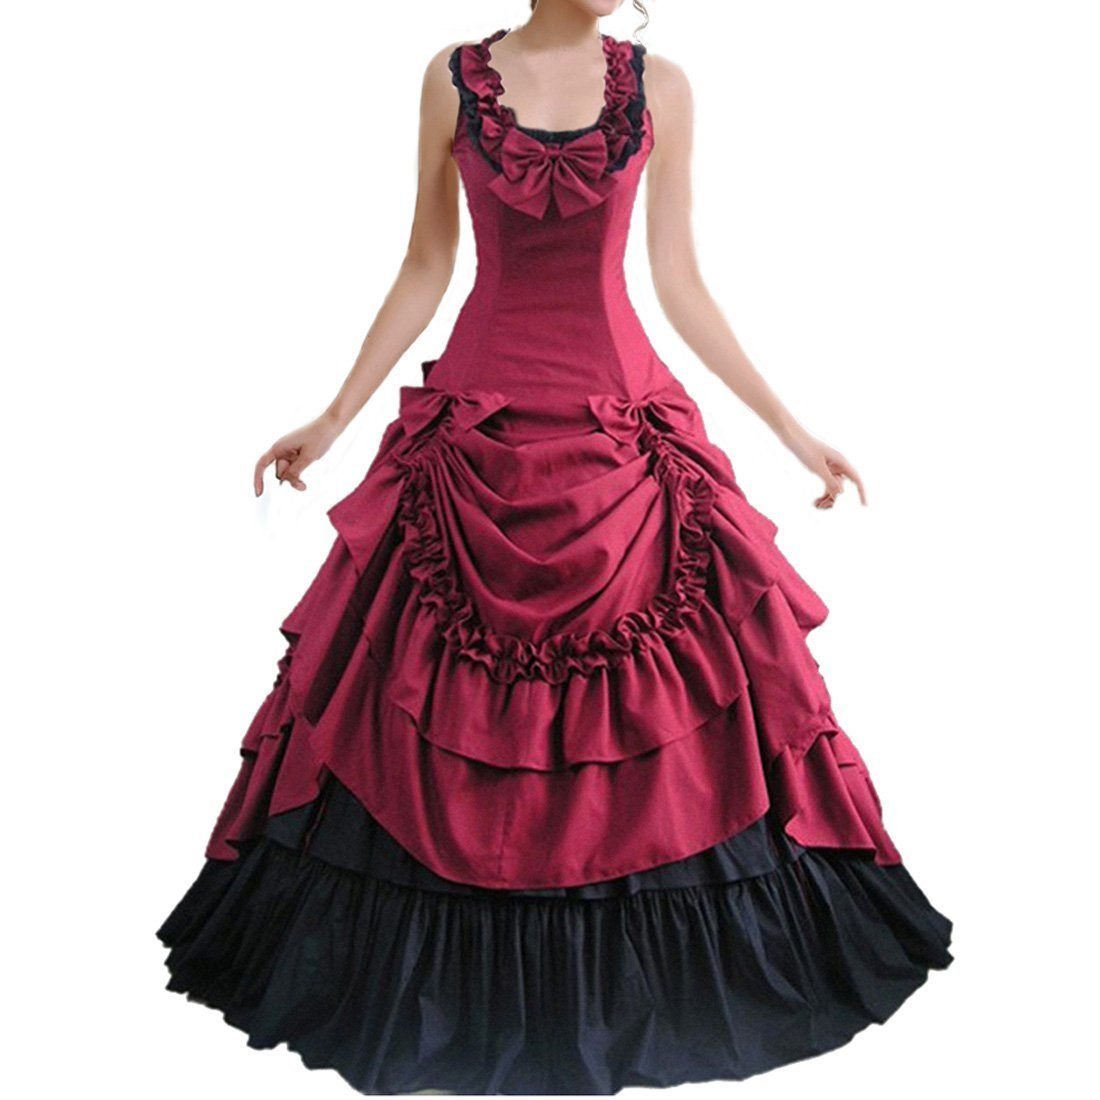 Victorian Clothing, Costumes & 1800s Fashion Partiss Womens Sleeveless Bowknot Ballgown Gothic Dress $79.99 AT vintagedancer.com